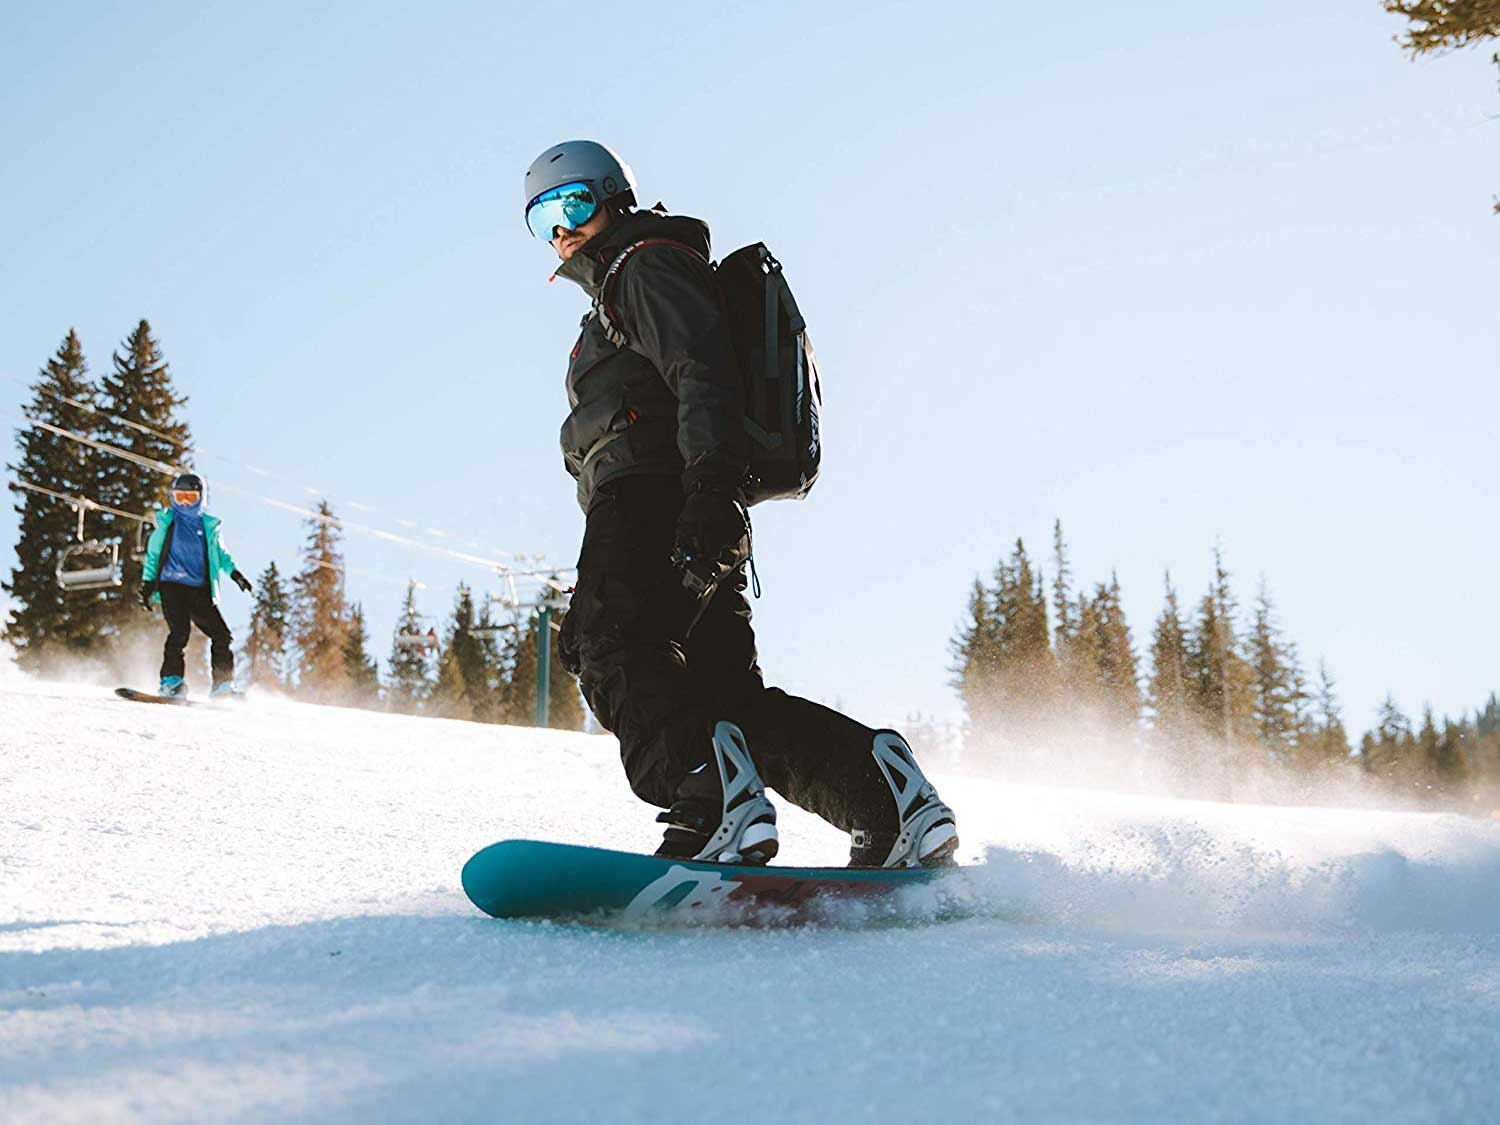 Snowboarder boarding down mountain.